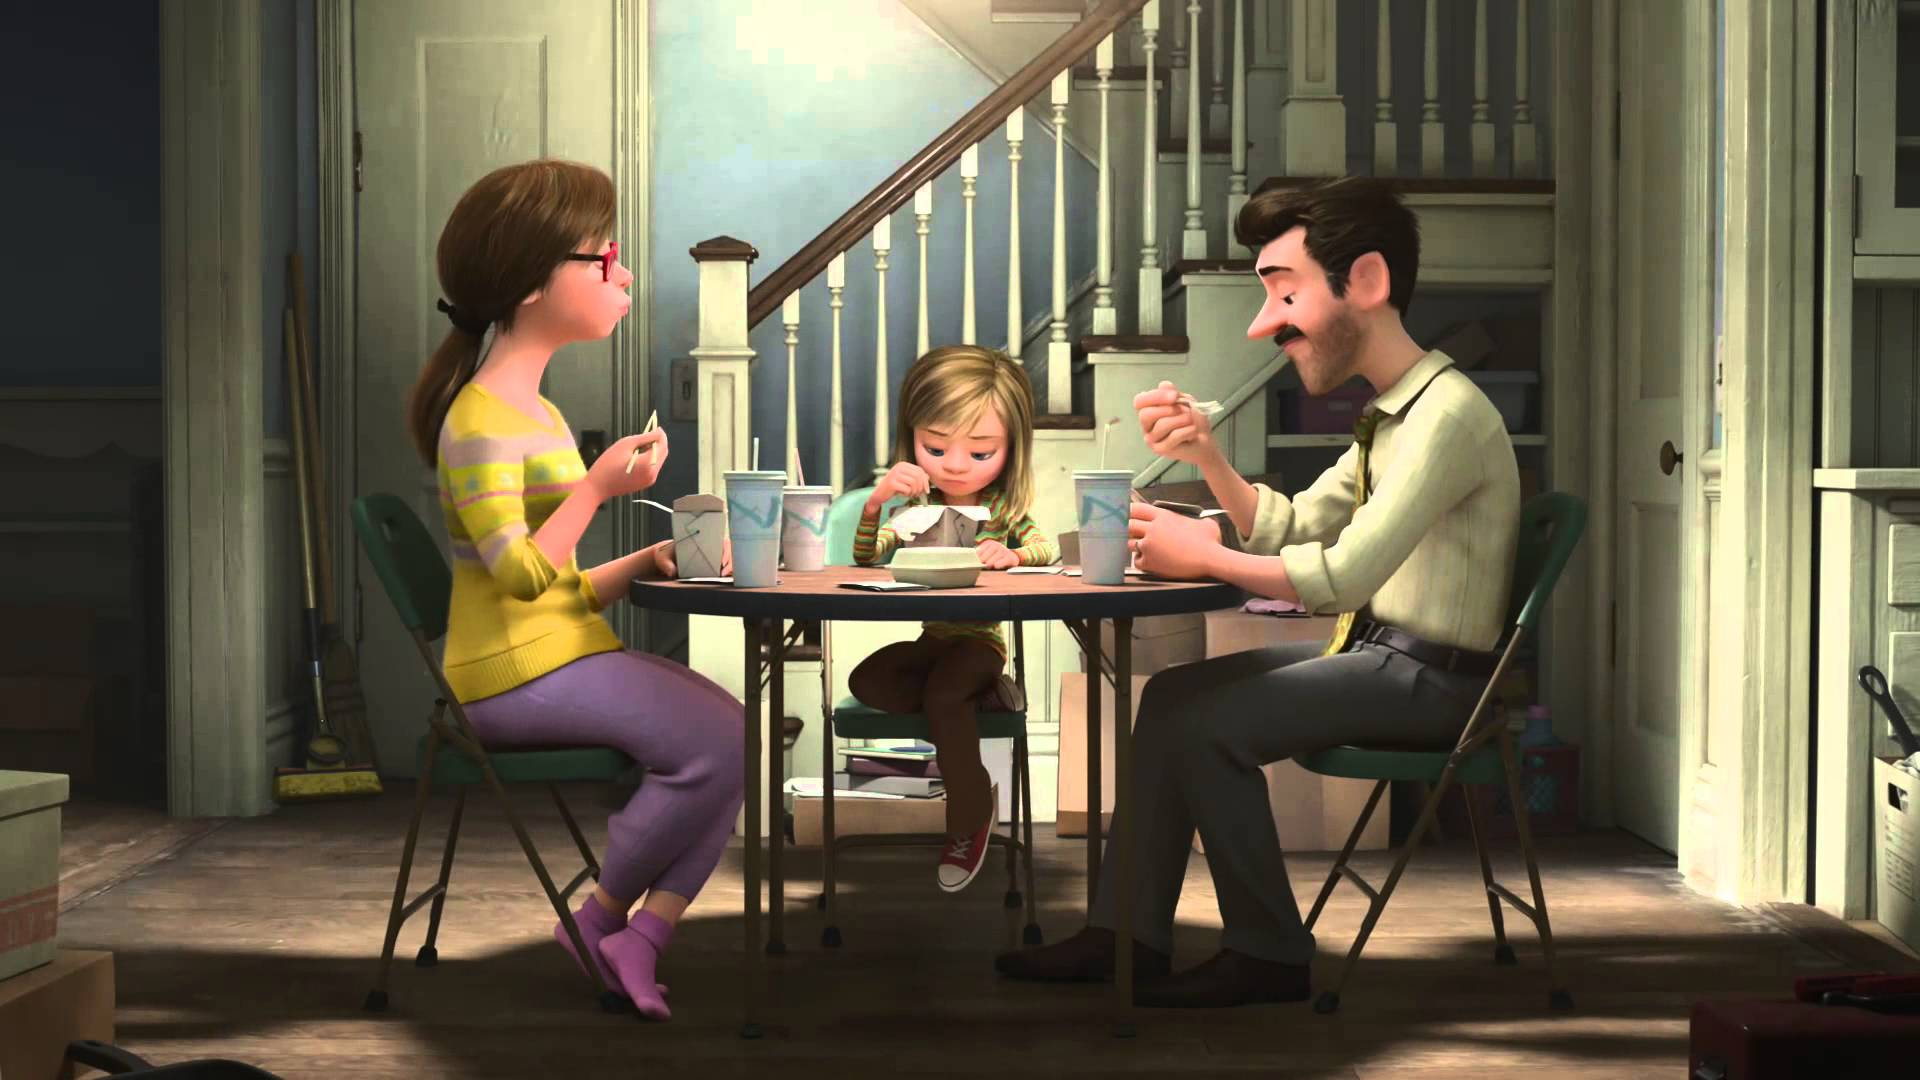 VIDEO: Film Animasi Inside Out Rilis Trailer Perdana